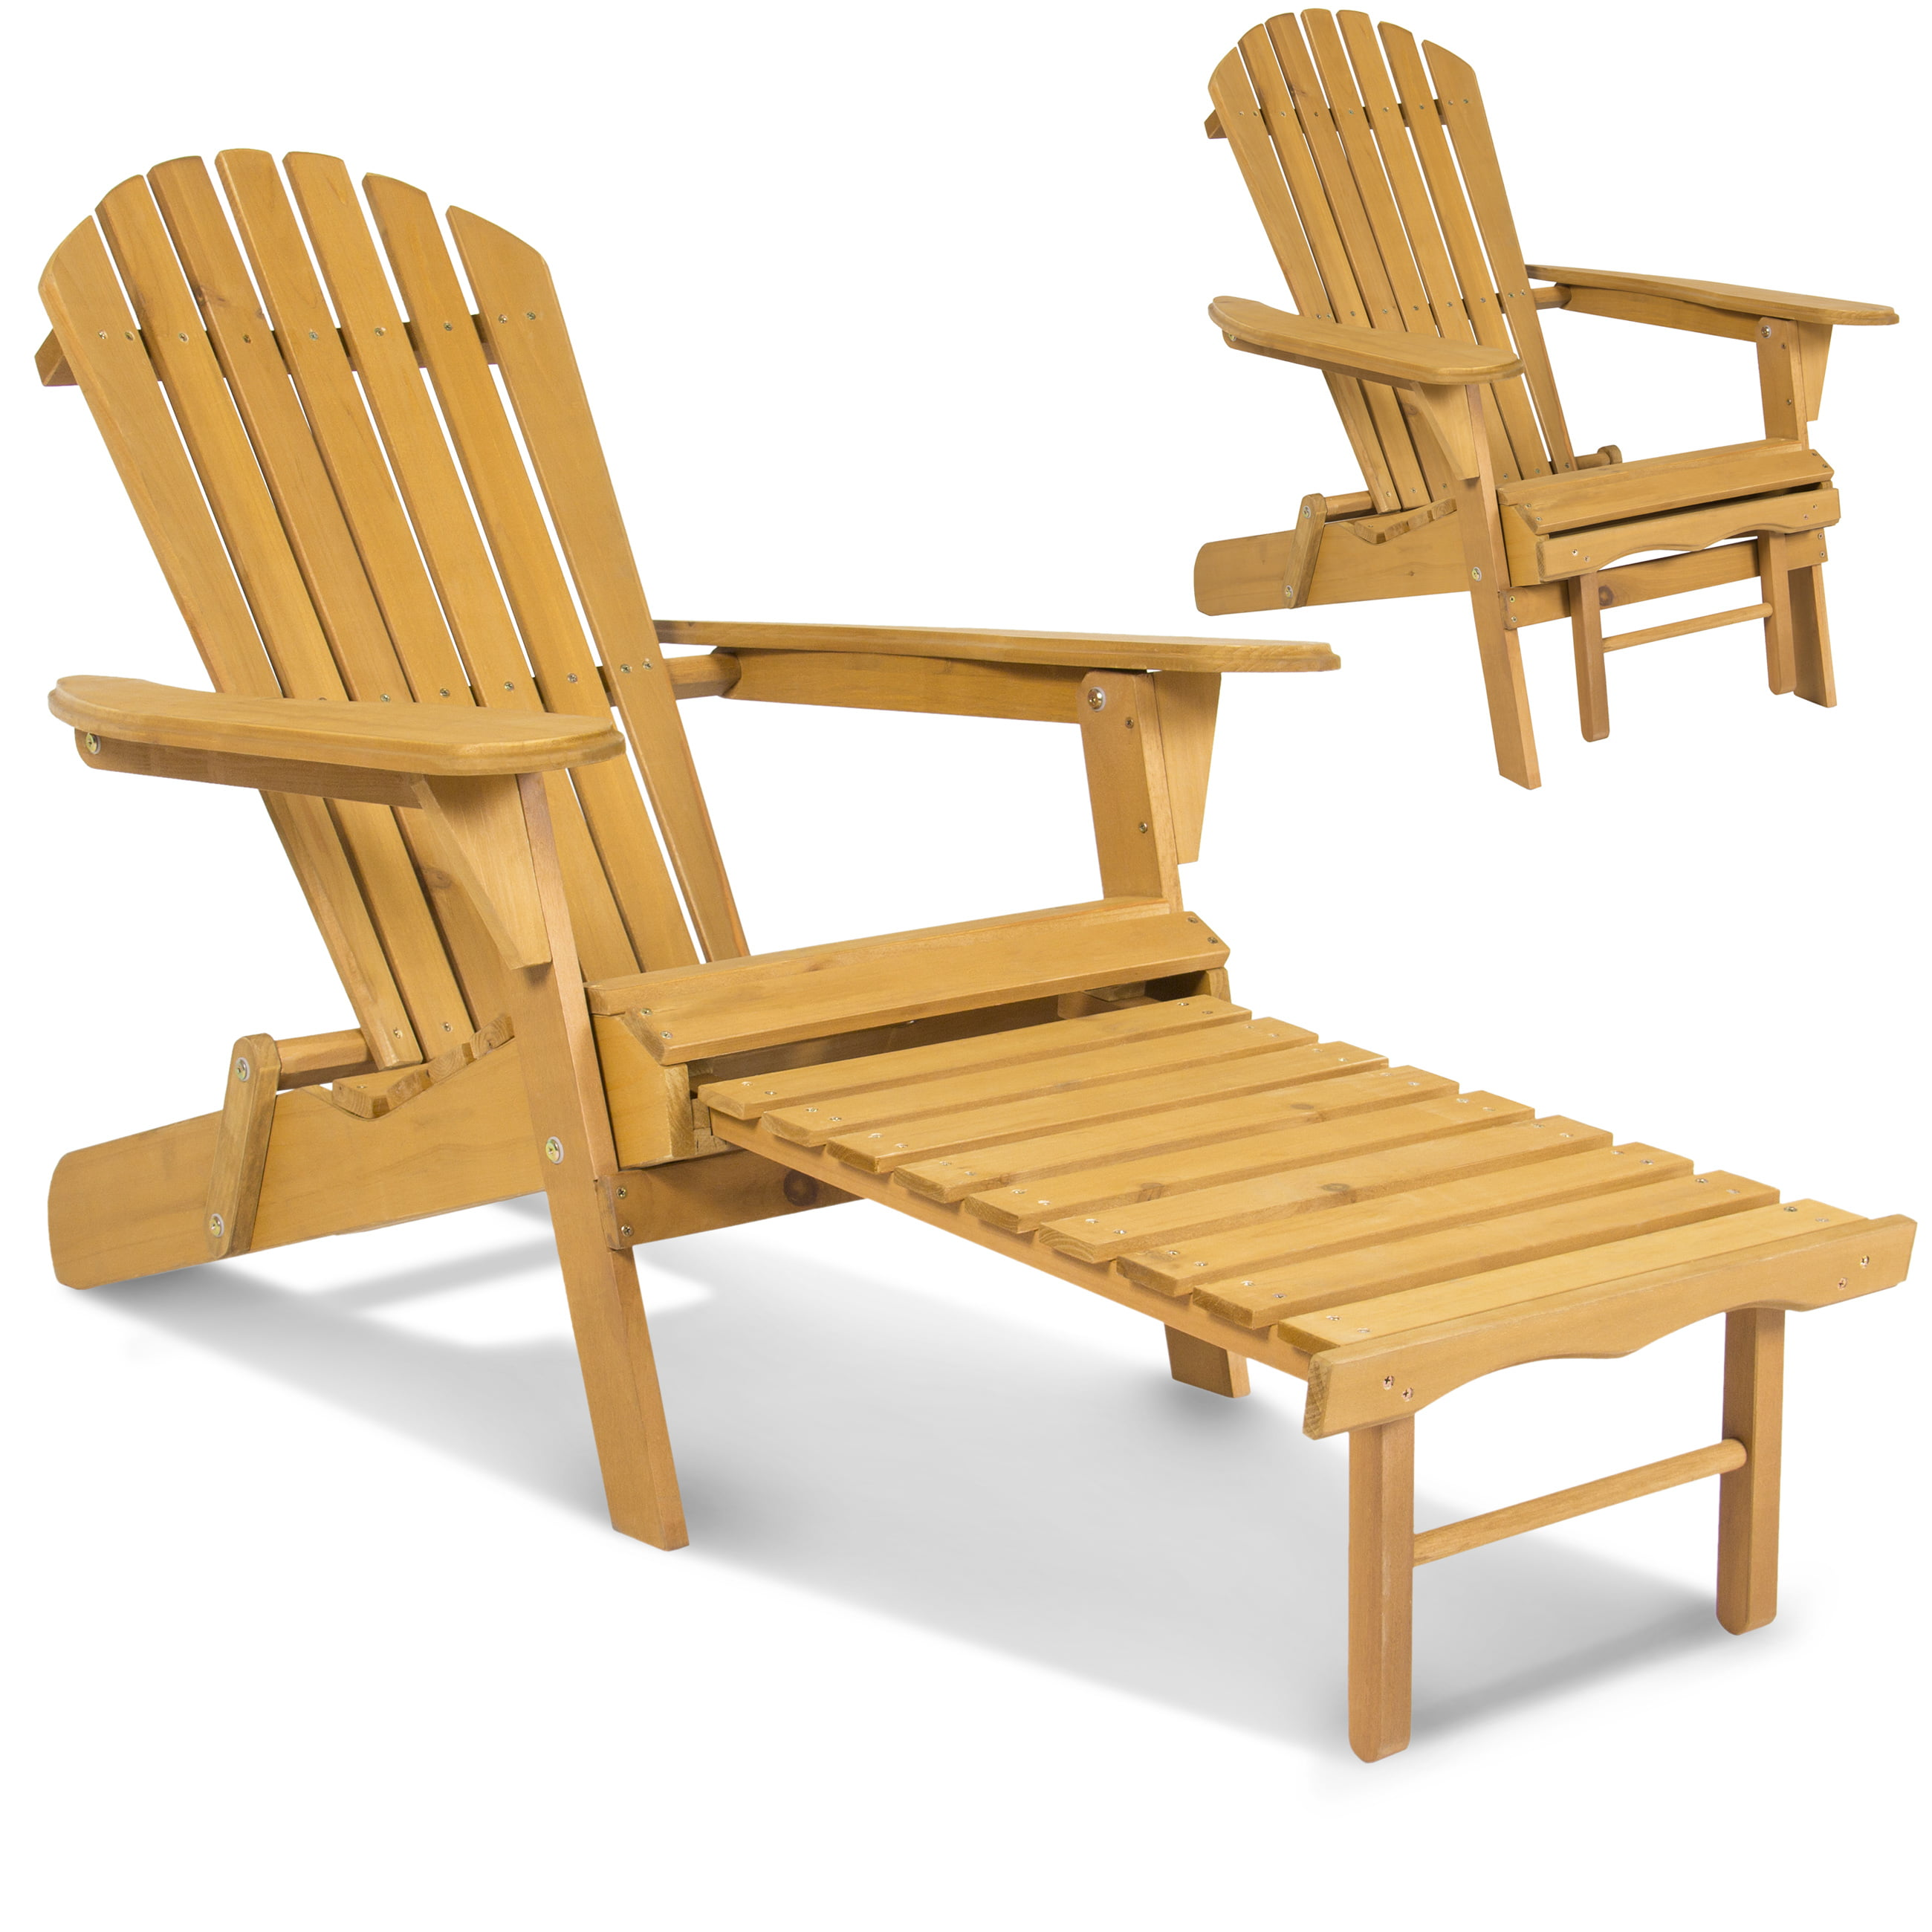 Outdoor Wood Adirondack Chair Foldable W/ Pull Out Ottoman Patio Deck  Furniture   Walmart.com